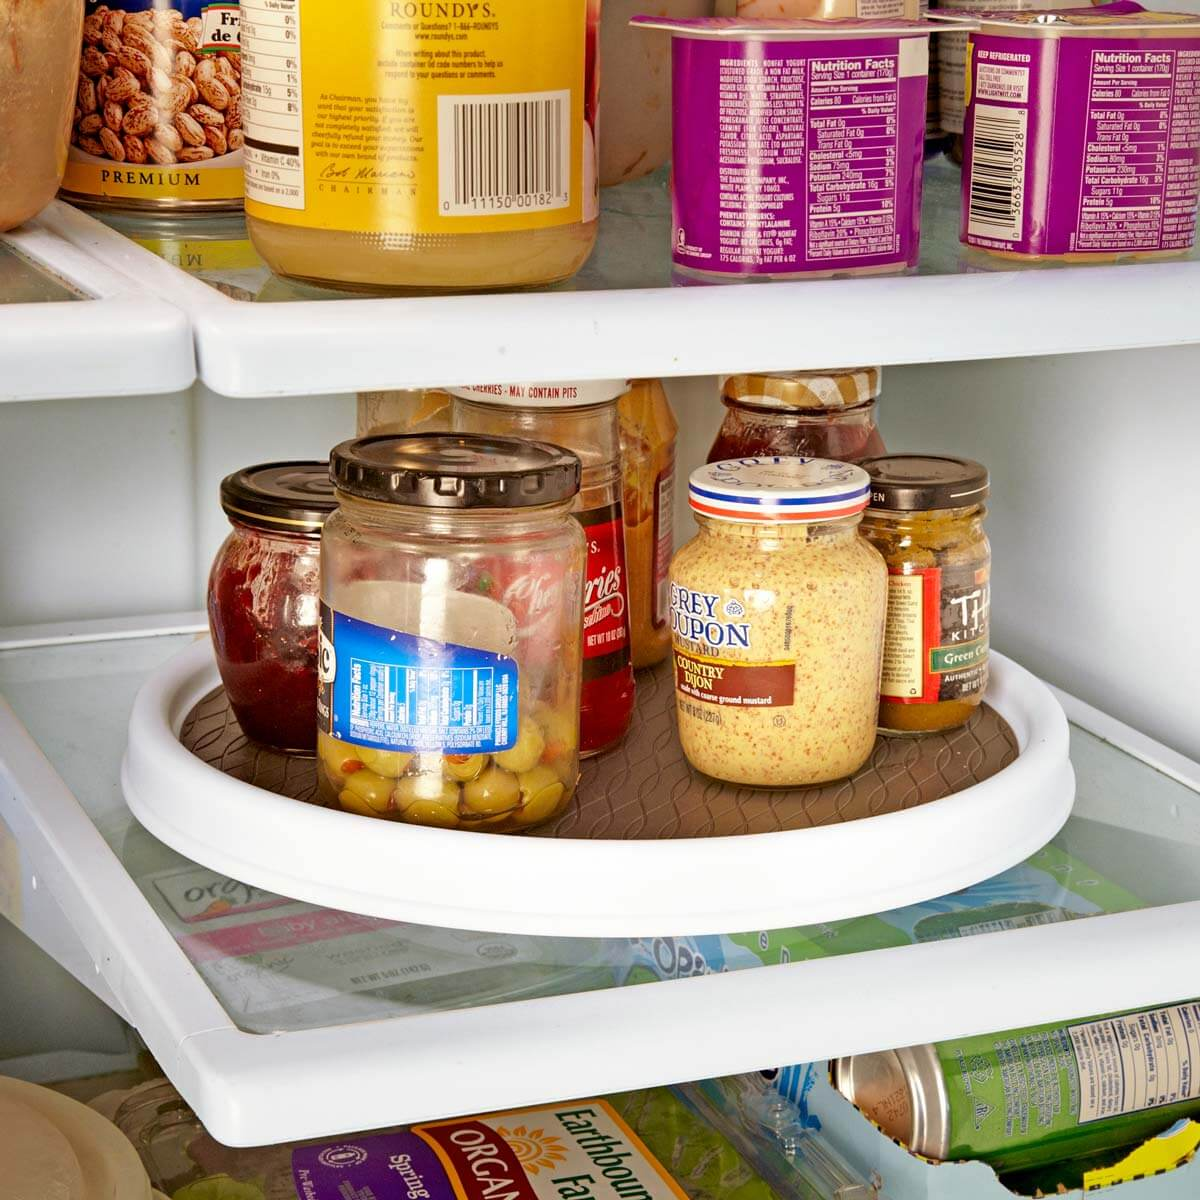 Add a Lazy Susan to the fridge to make small items more accessible